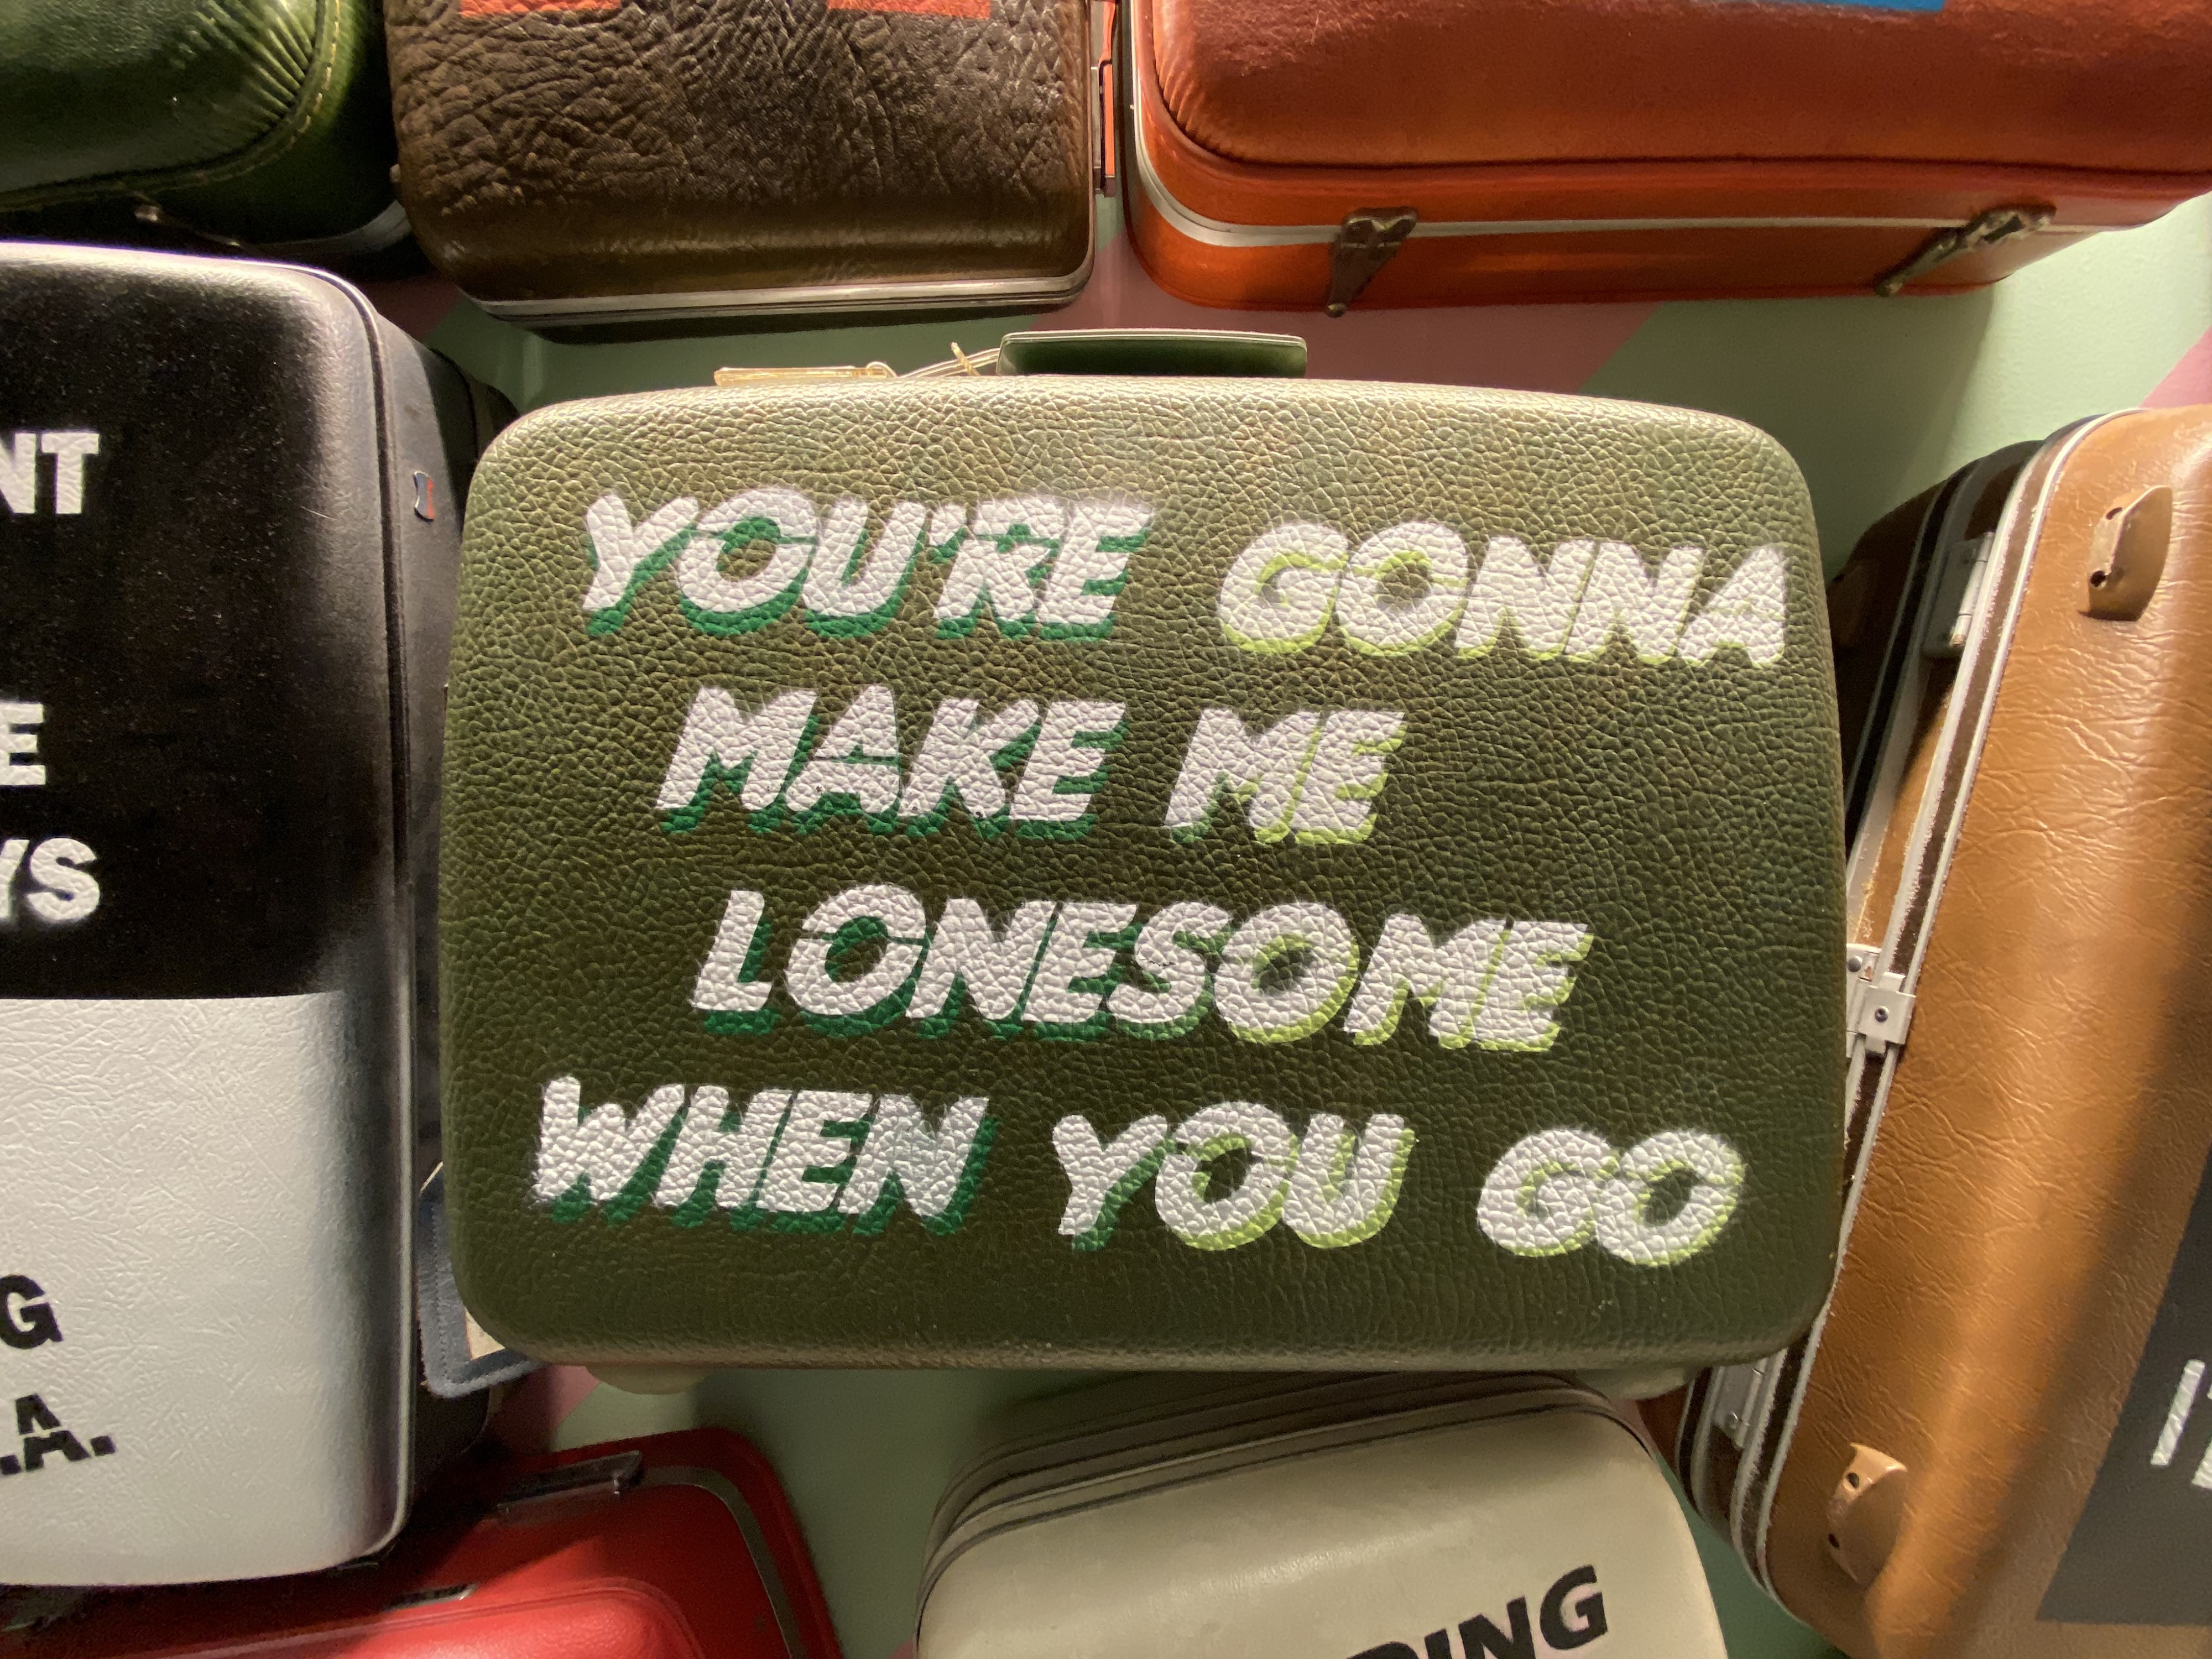 """A vintage suitcase (tucked in a pile) reads, """"You're gonna make me lonesome when you go."""""""